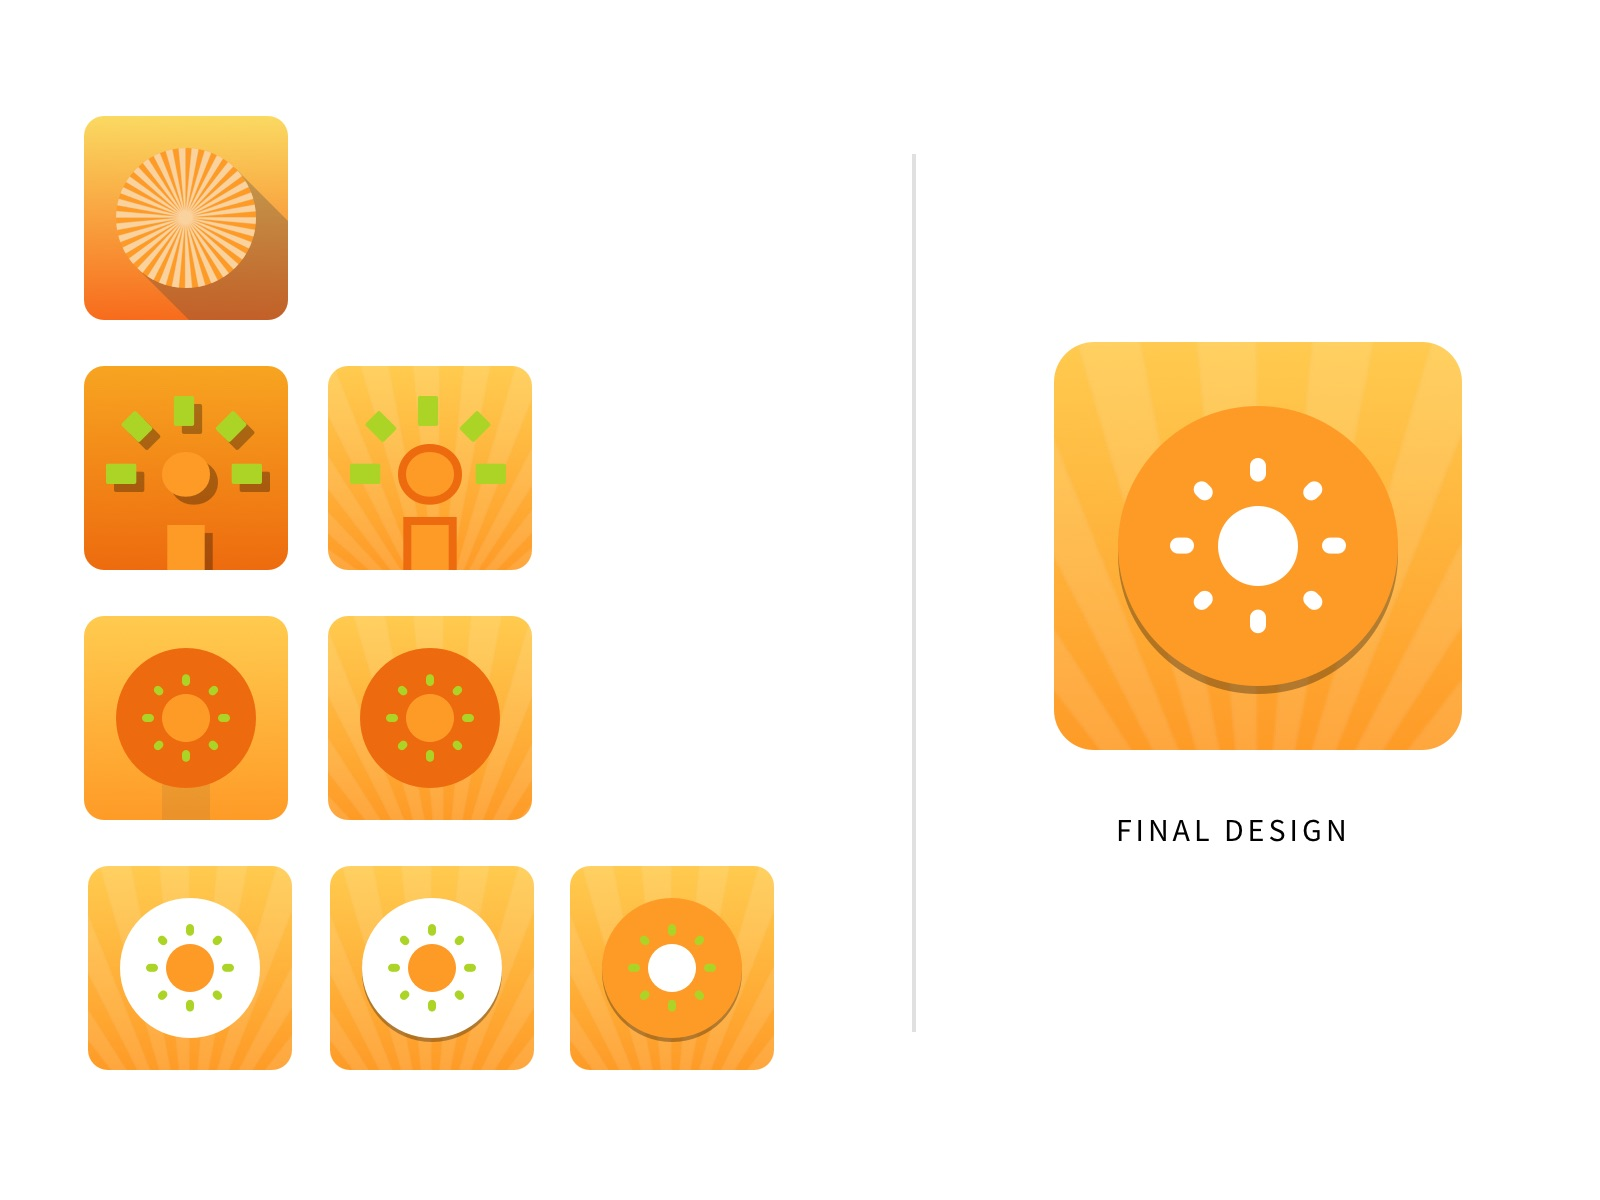 Variations of the Fuzzies icon, before selecting a final.